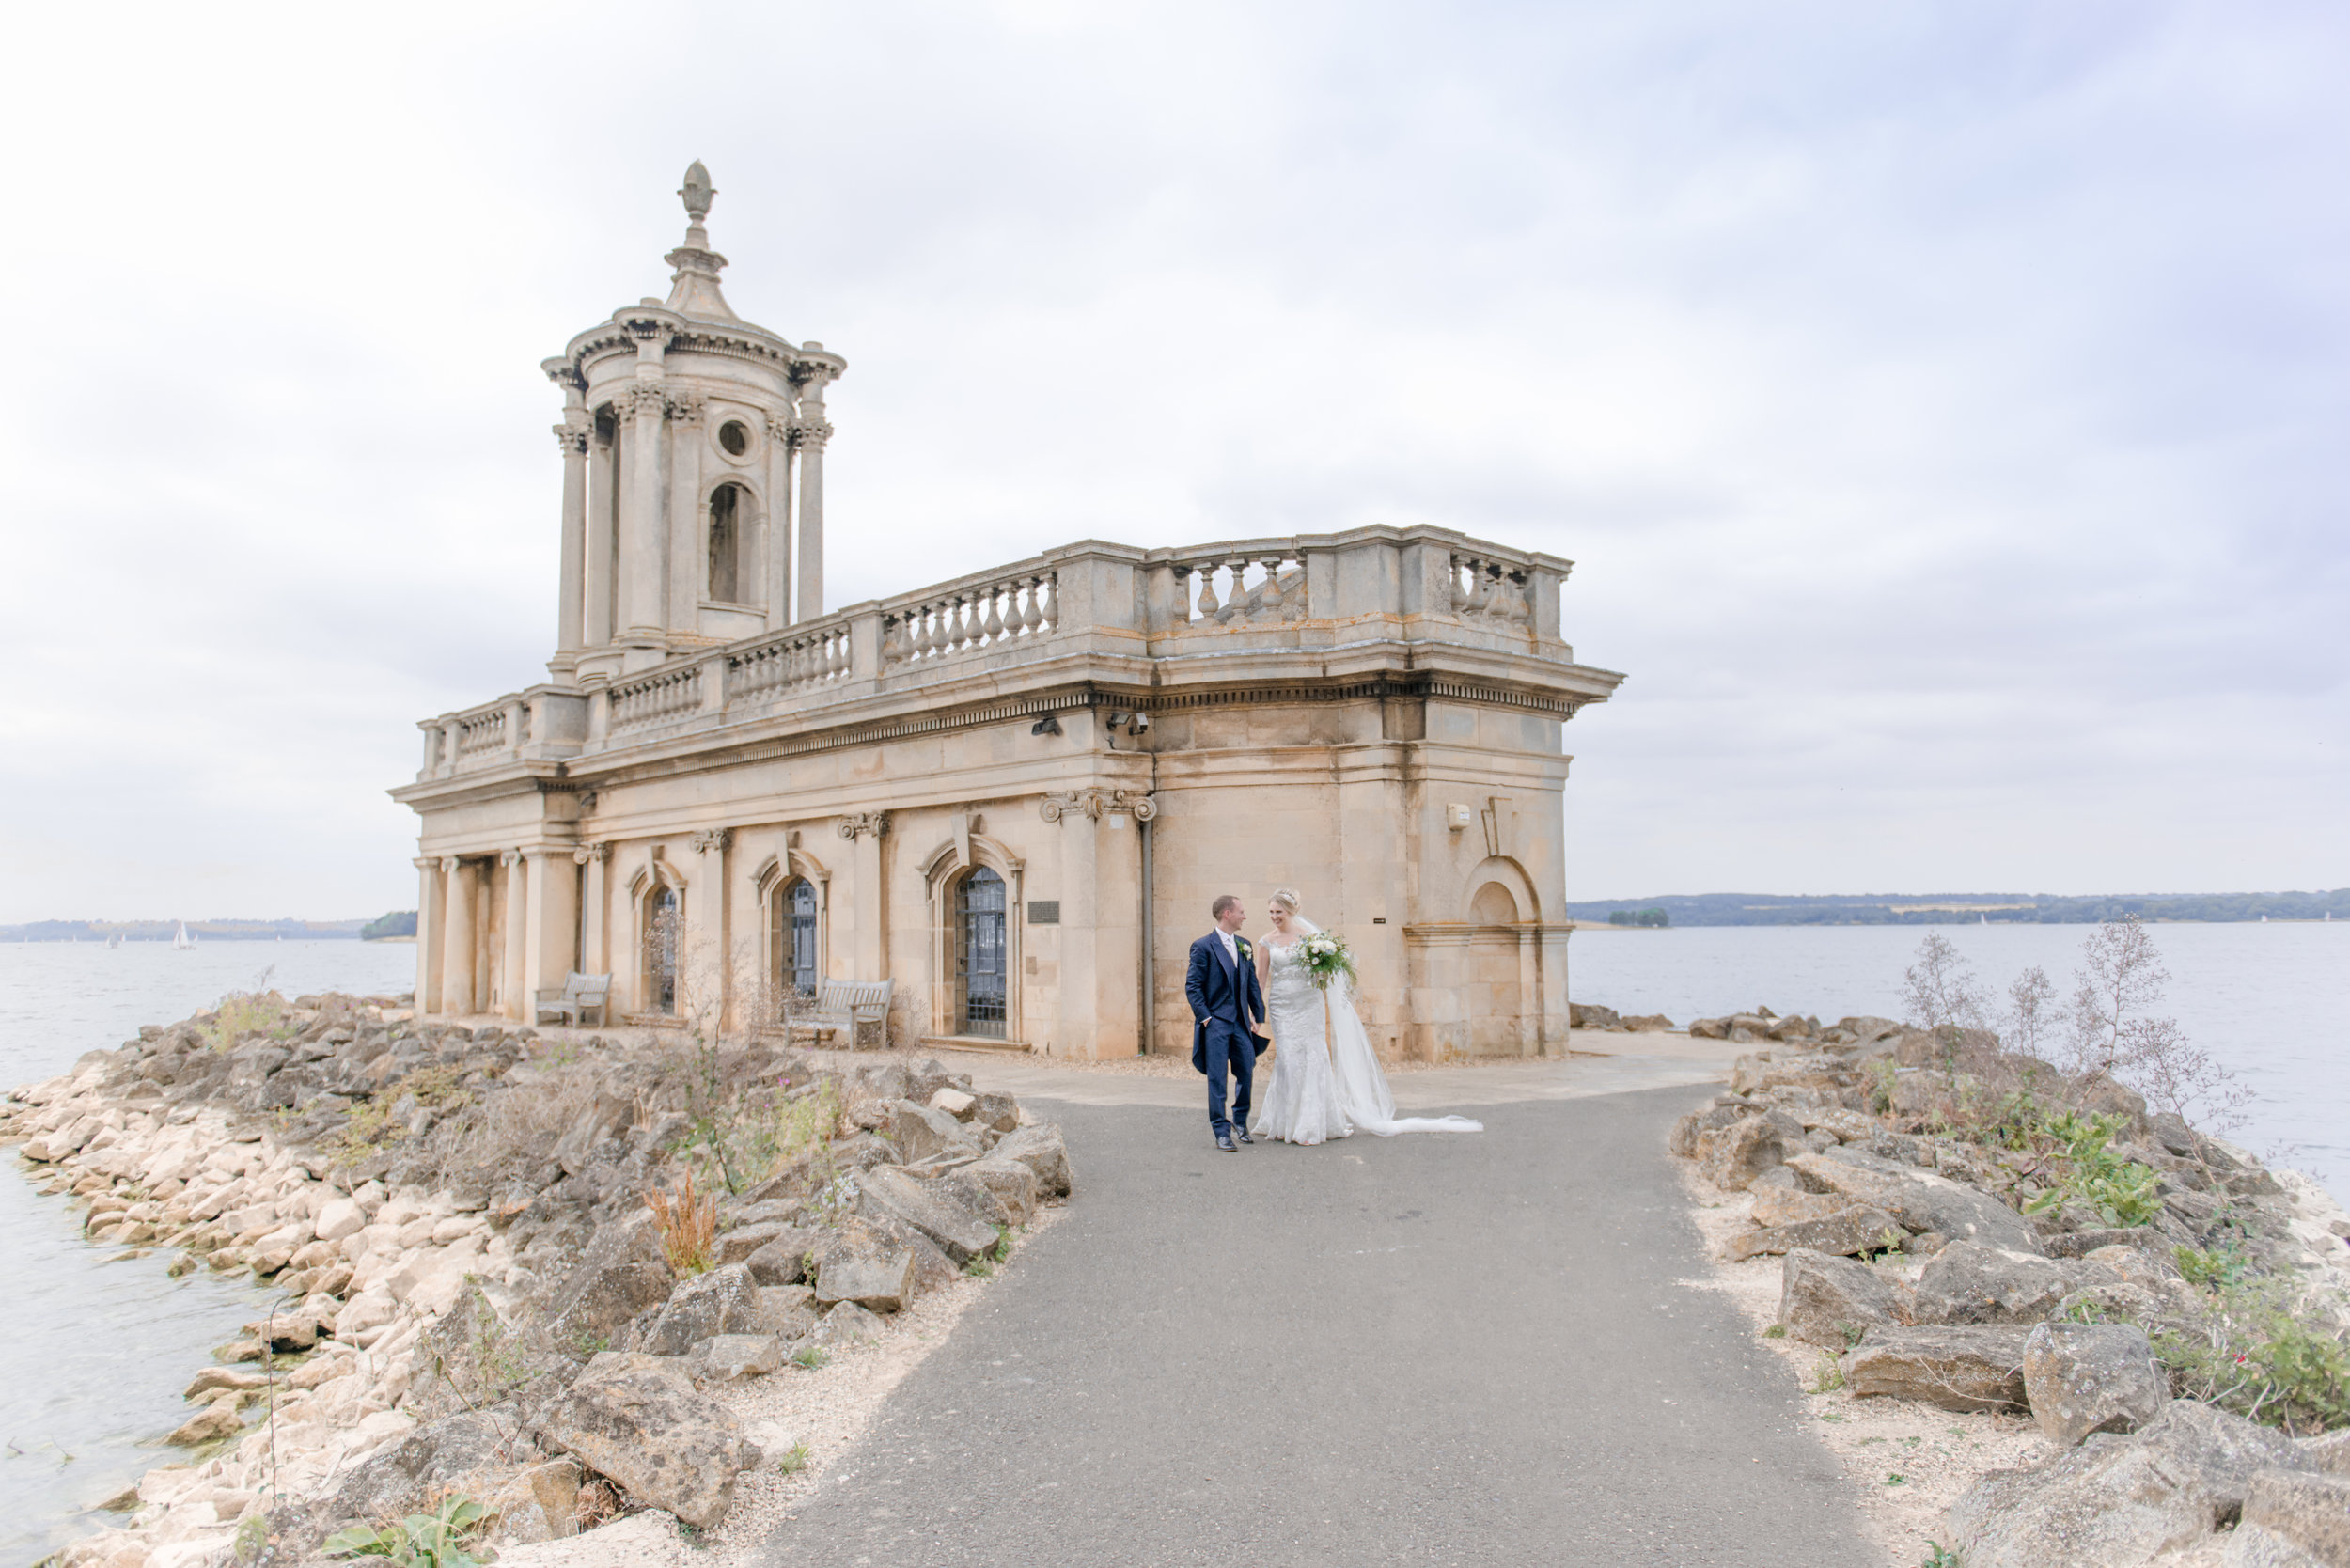 W+G_Normanton Church_Rebekah Robert Photography_Fine Art Photography-103.jpg